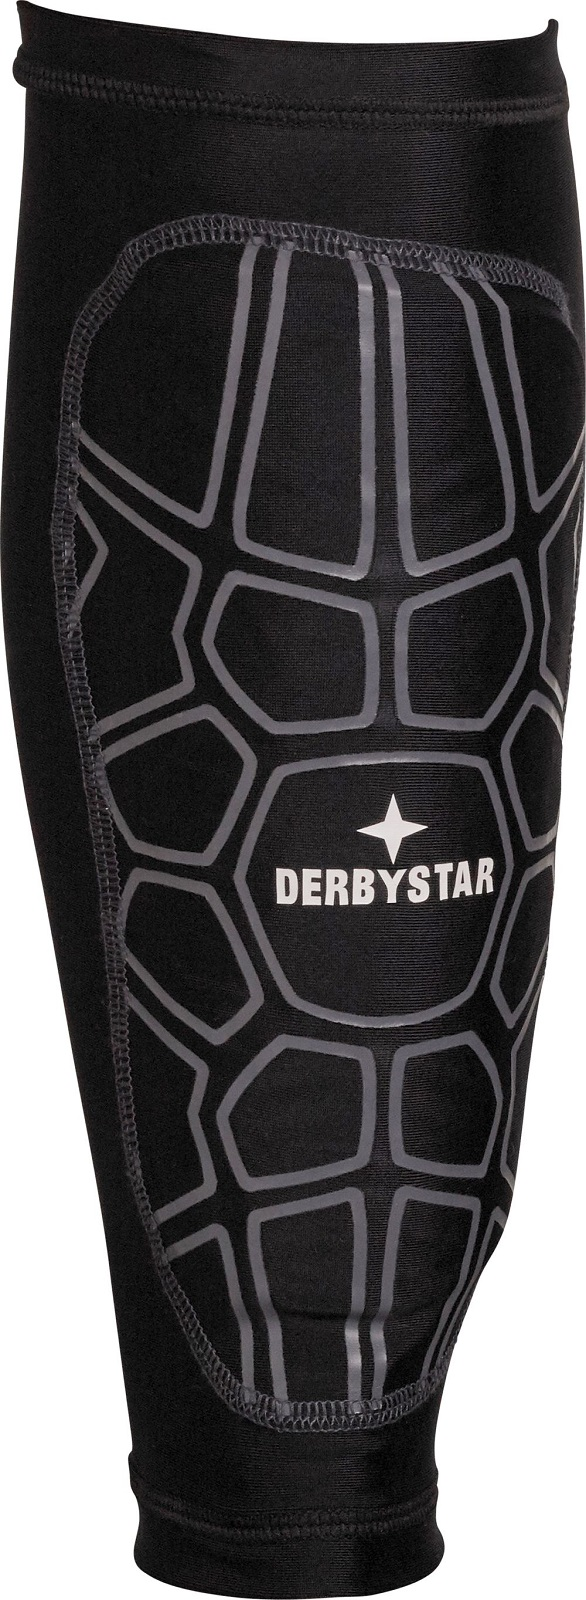 Derbystar Socke Safe